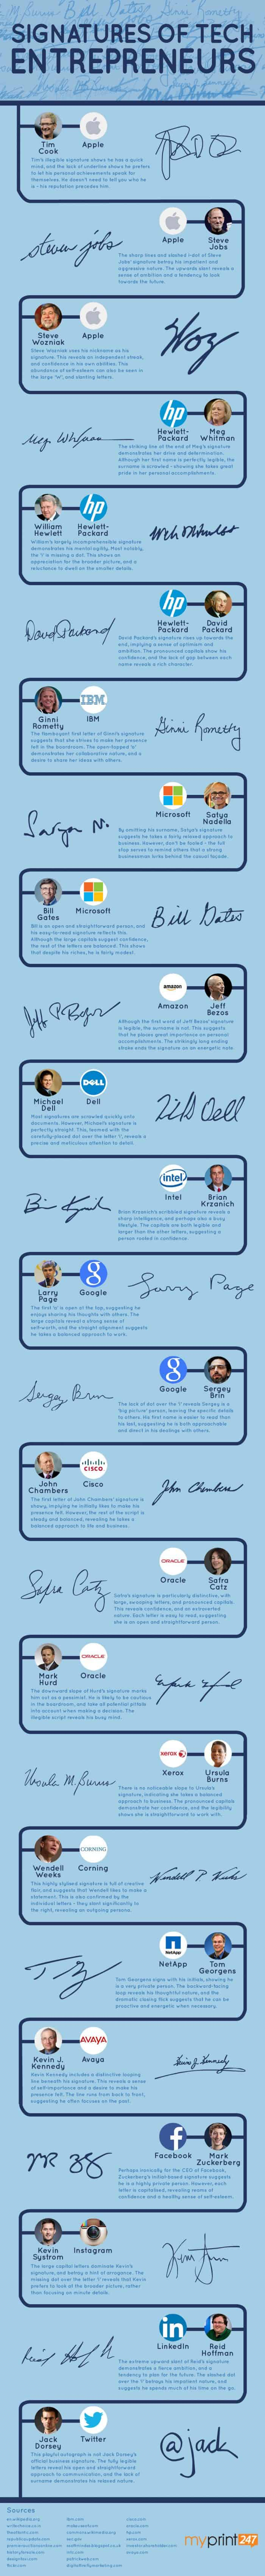 Decoding The Signatures of The World's Top CEOs